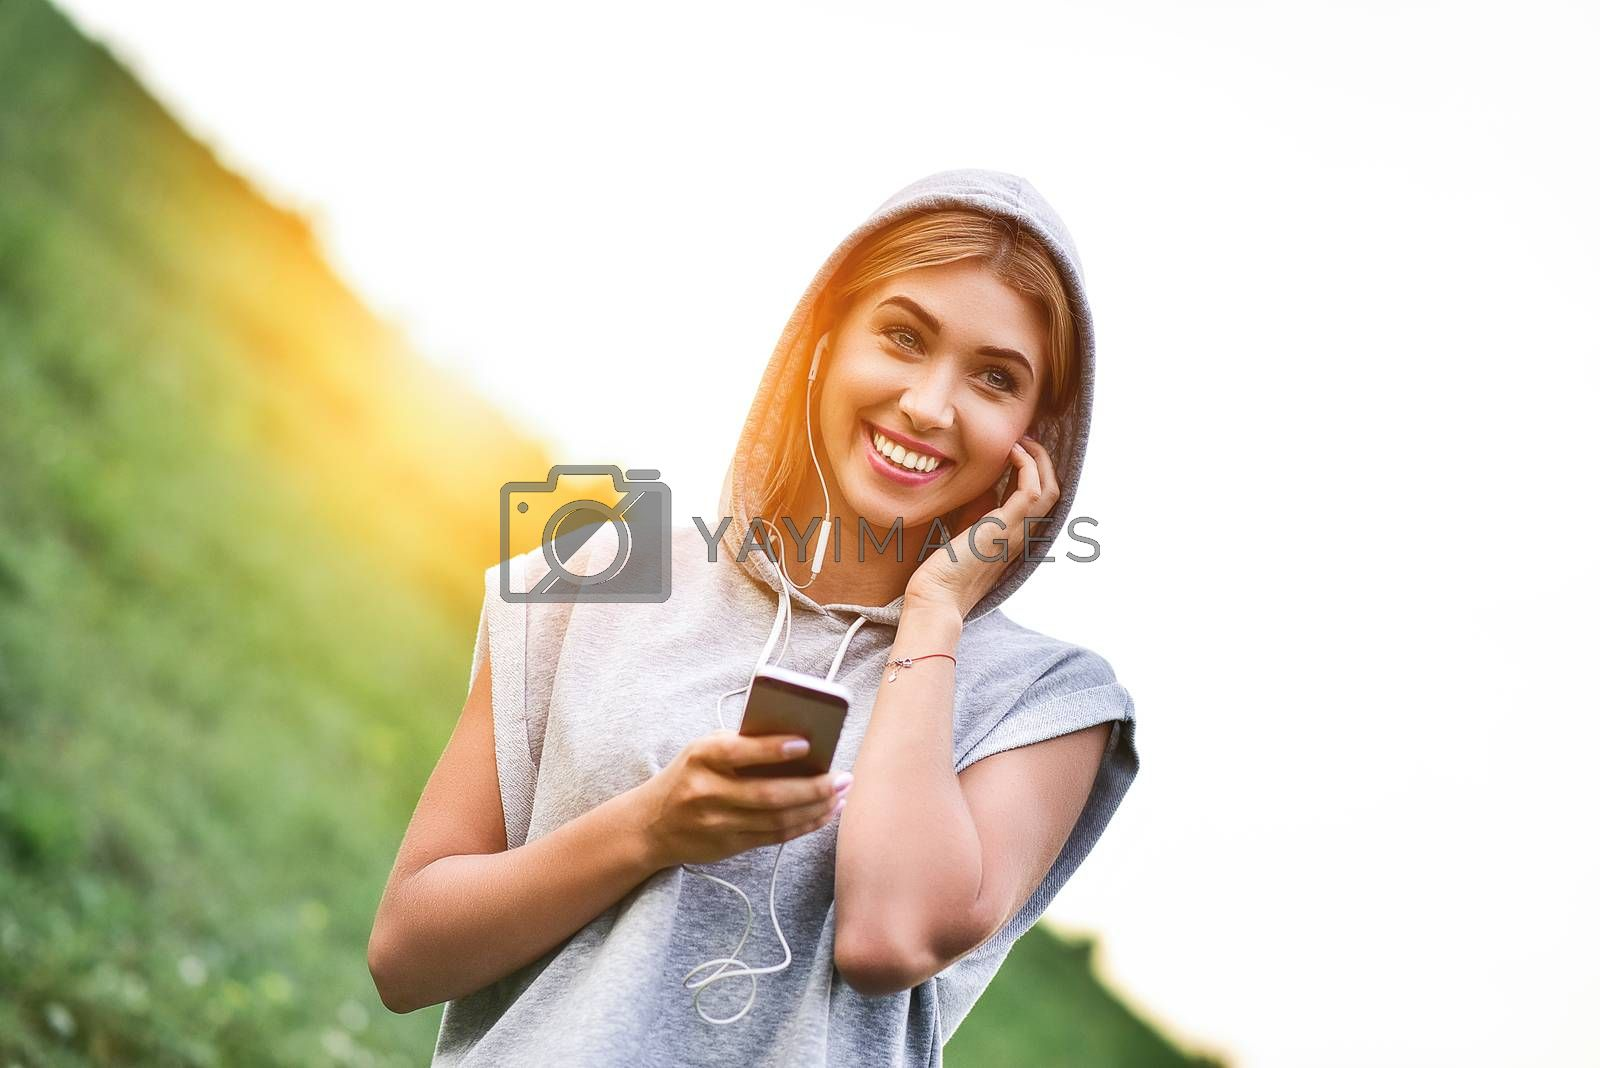 Beautiful young woman with headphones glad after nice jogging in city park